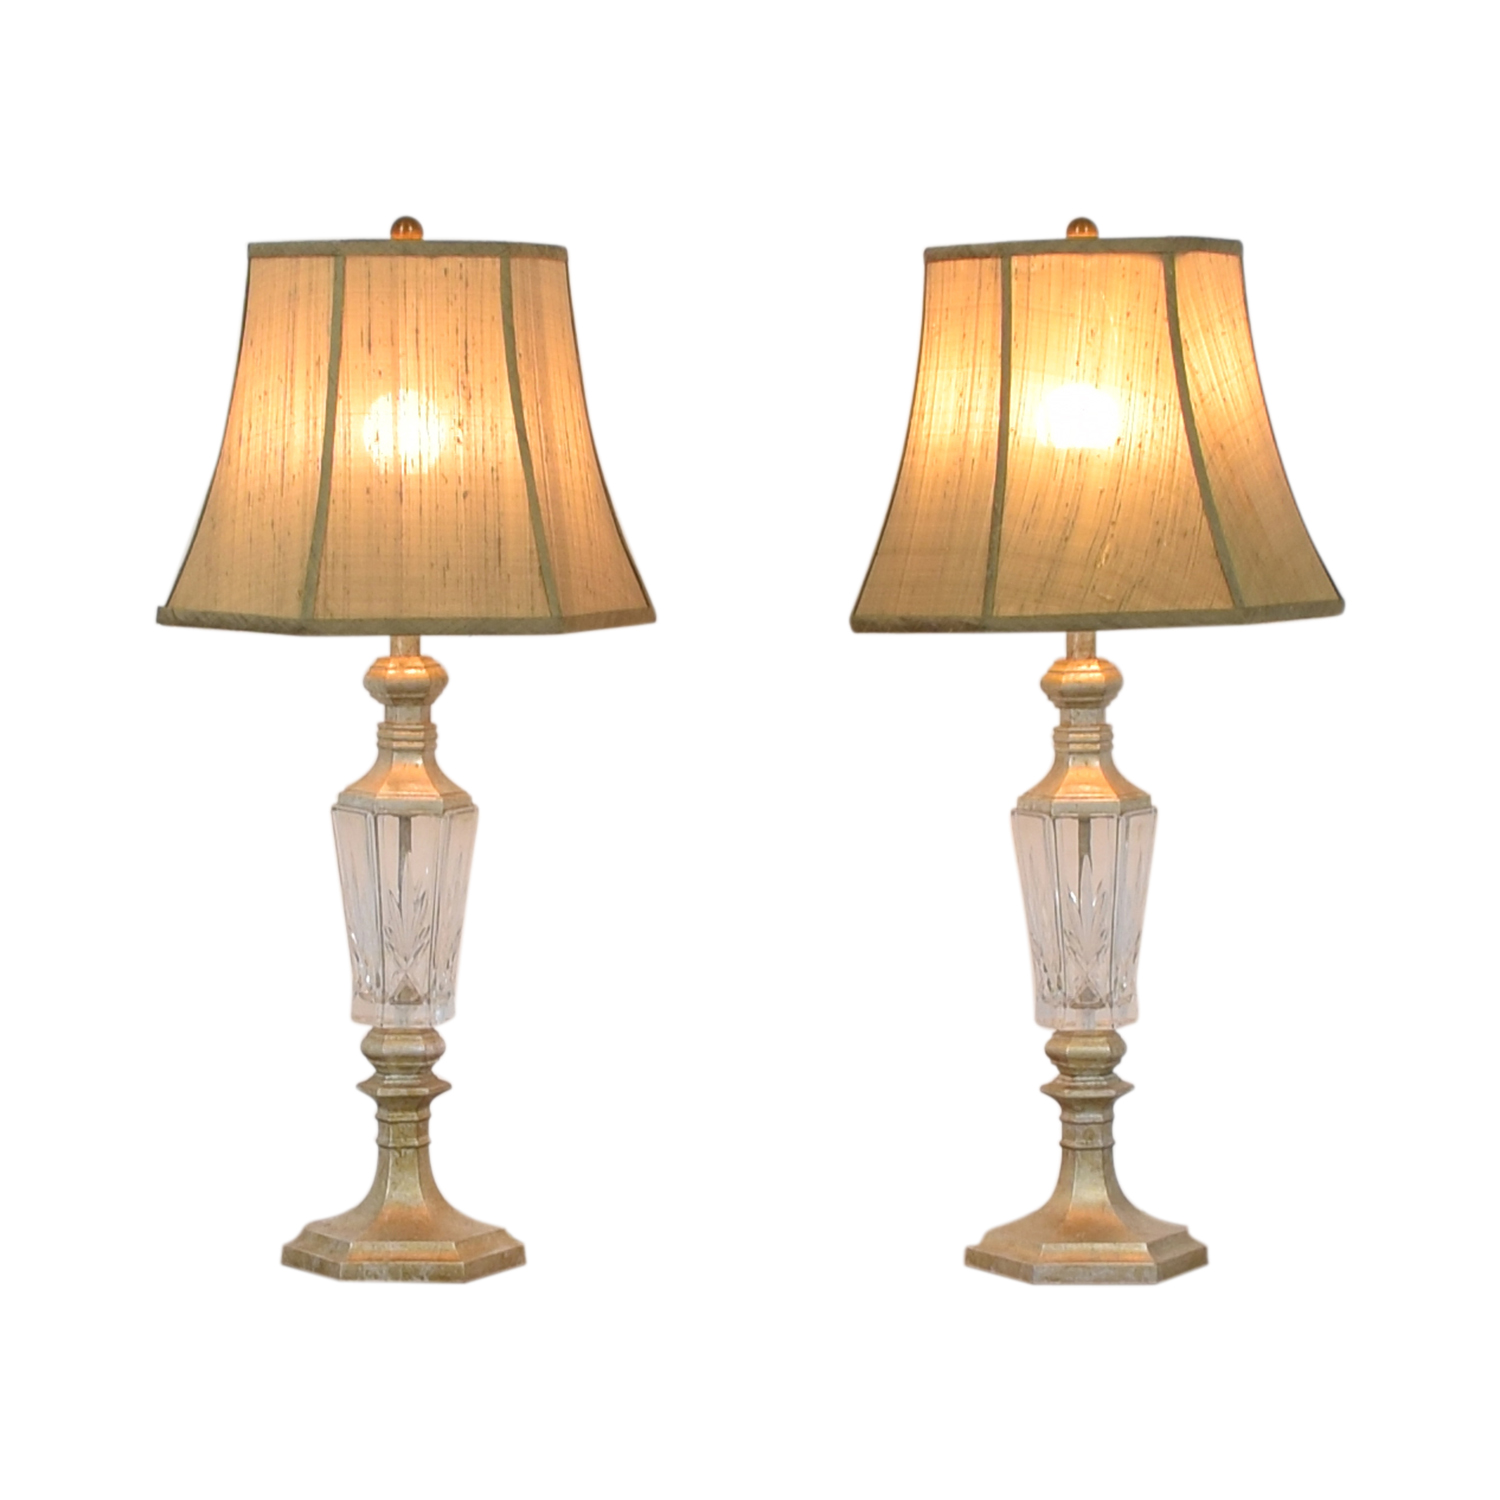 Distressed and Glass Accent Table Lamps nj